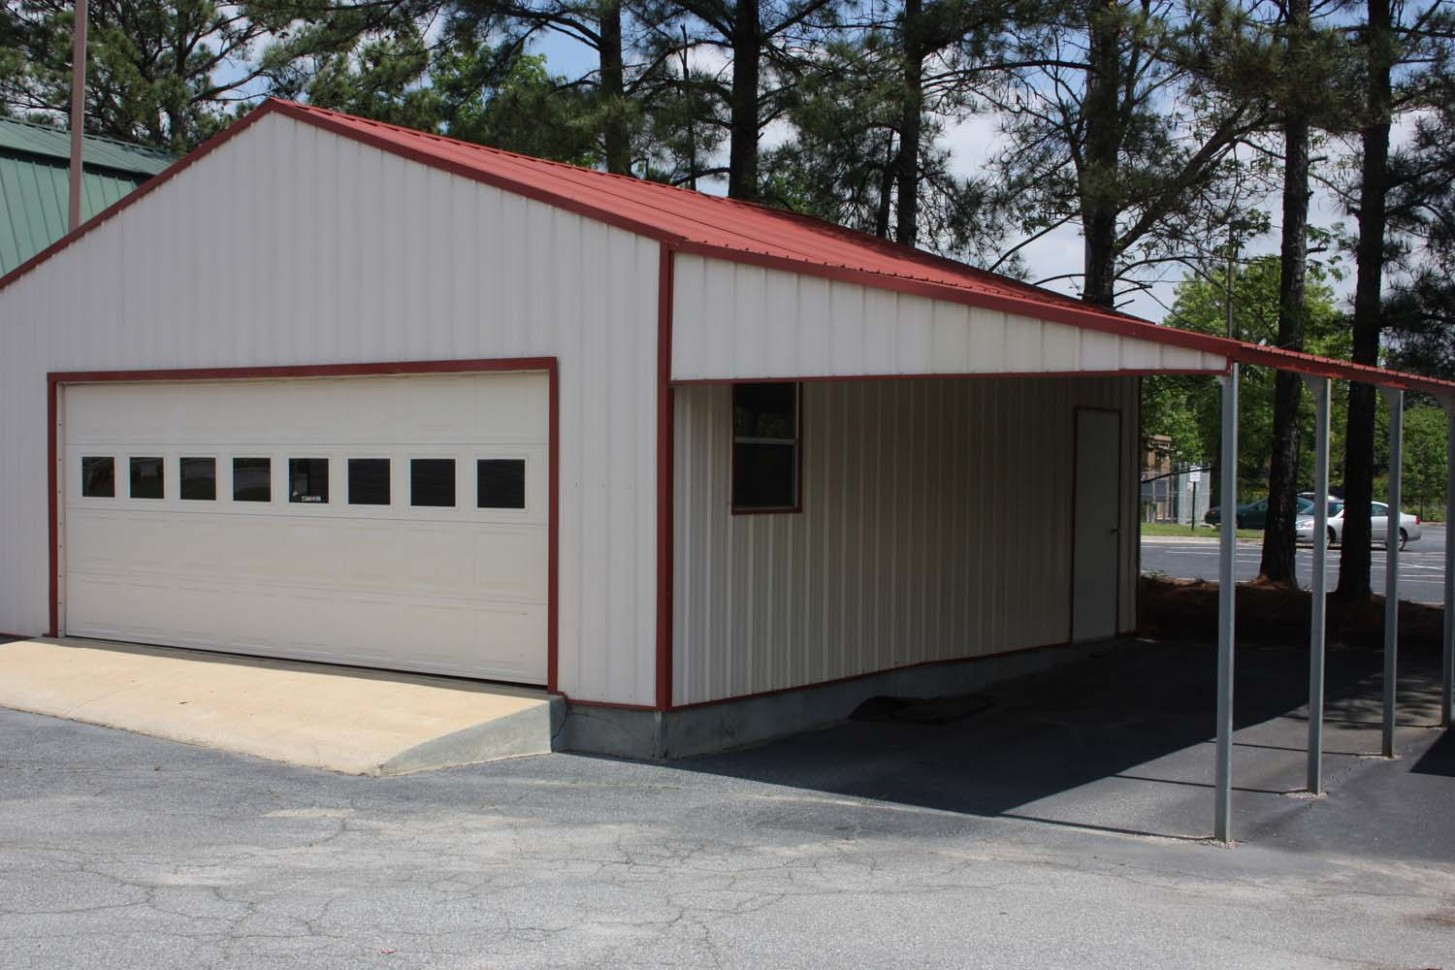 1517950250-steel-structure-garage-with-lean-to-carport-attachment-11-garage-pinterest-steel-structure-garage-car-ports.jpg